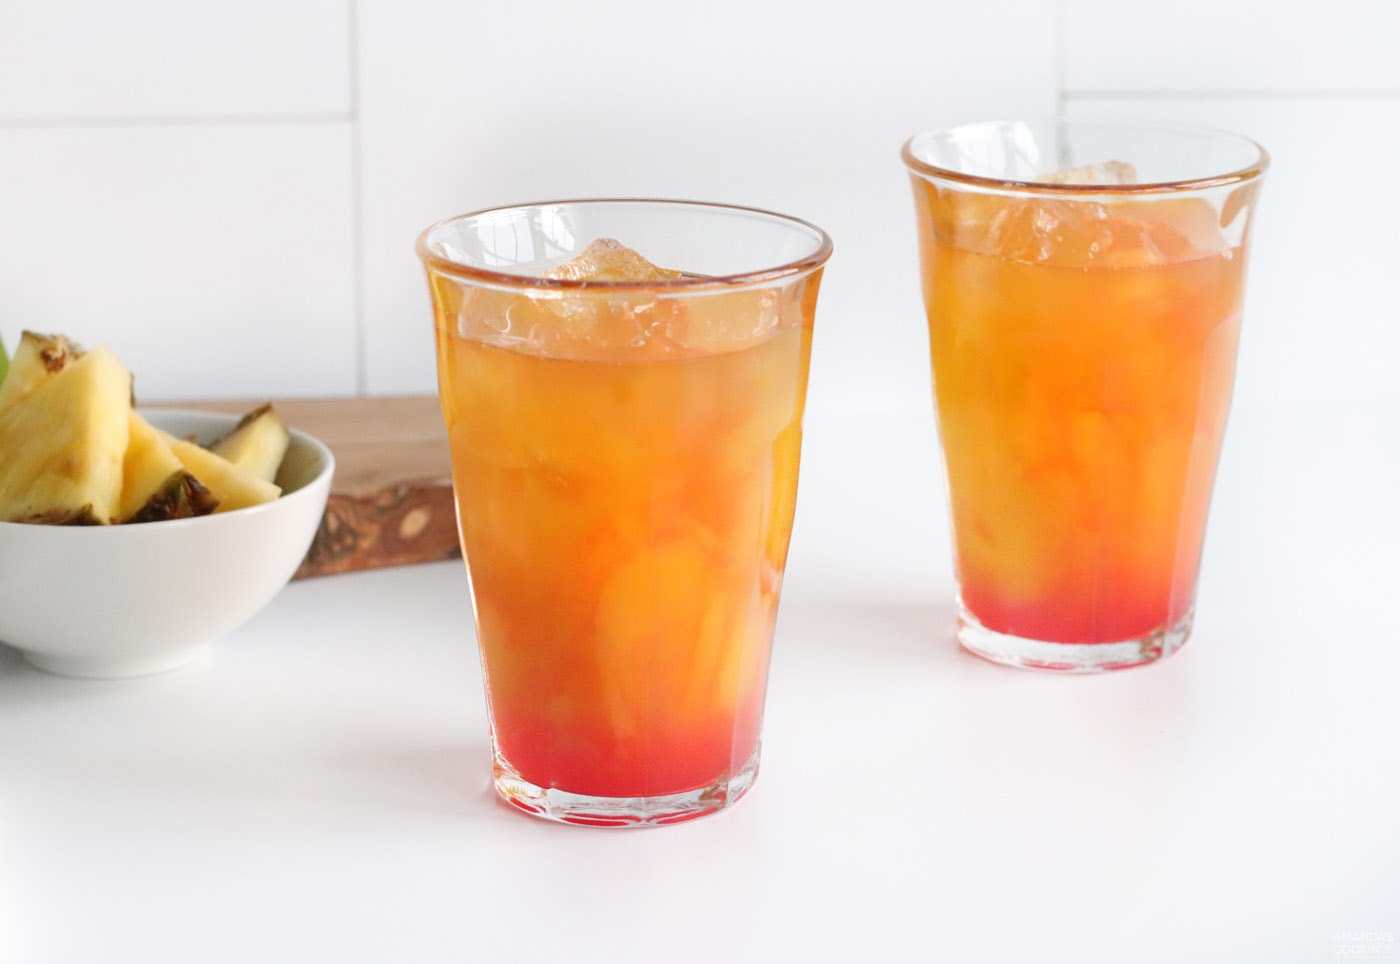 grenadine in a glass of pineapple juice, mango juice, and rum